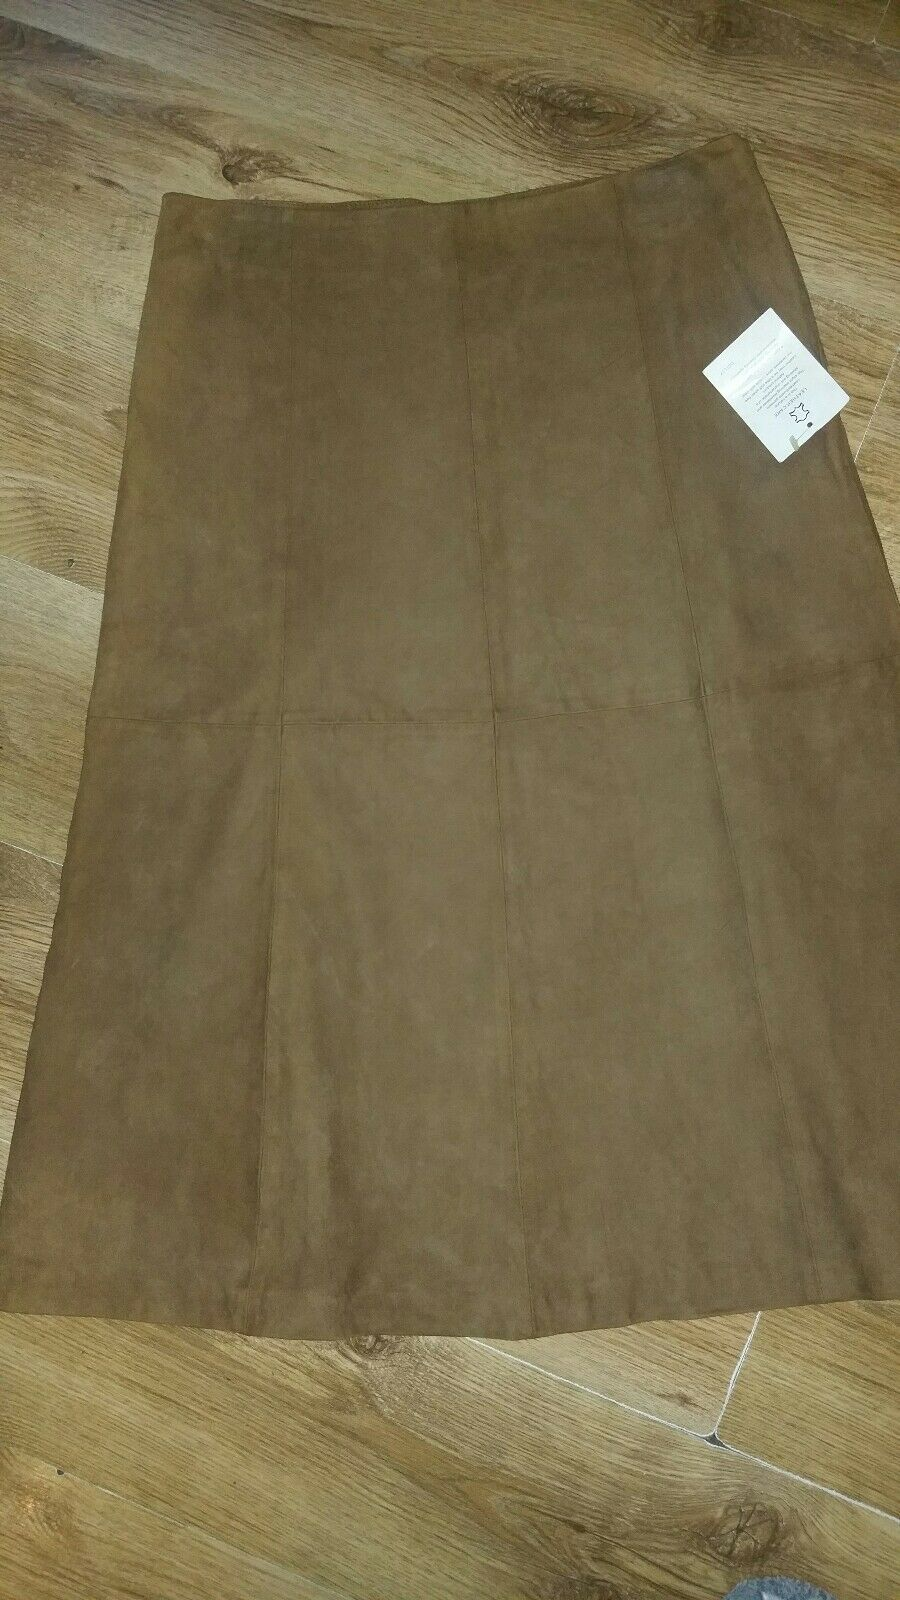 BNWT suede leather panelled skirt from COVE size 14 priced